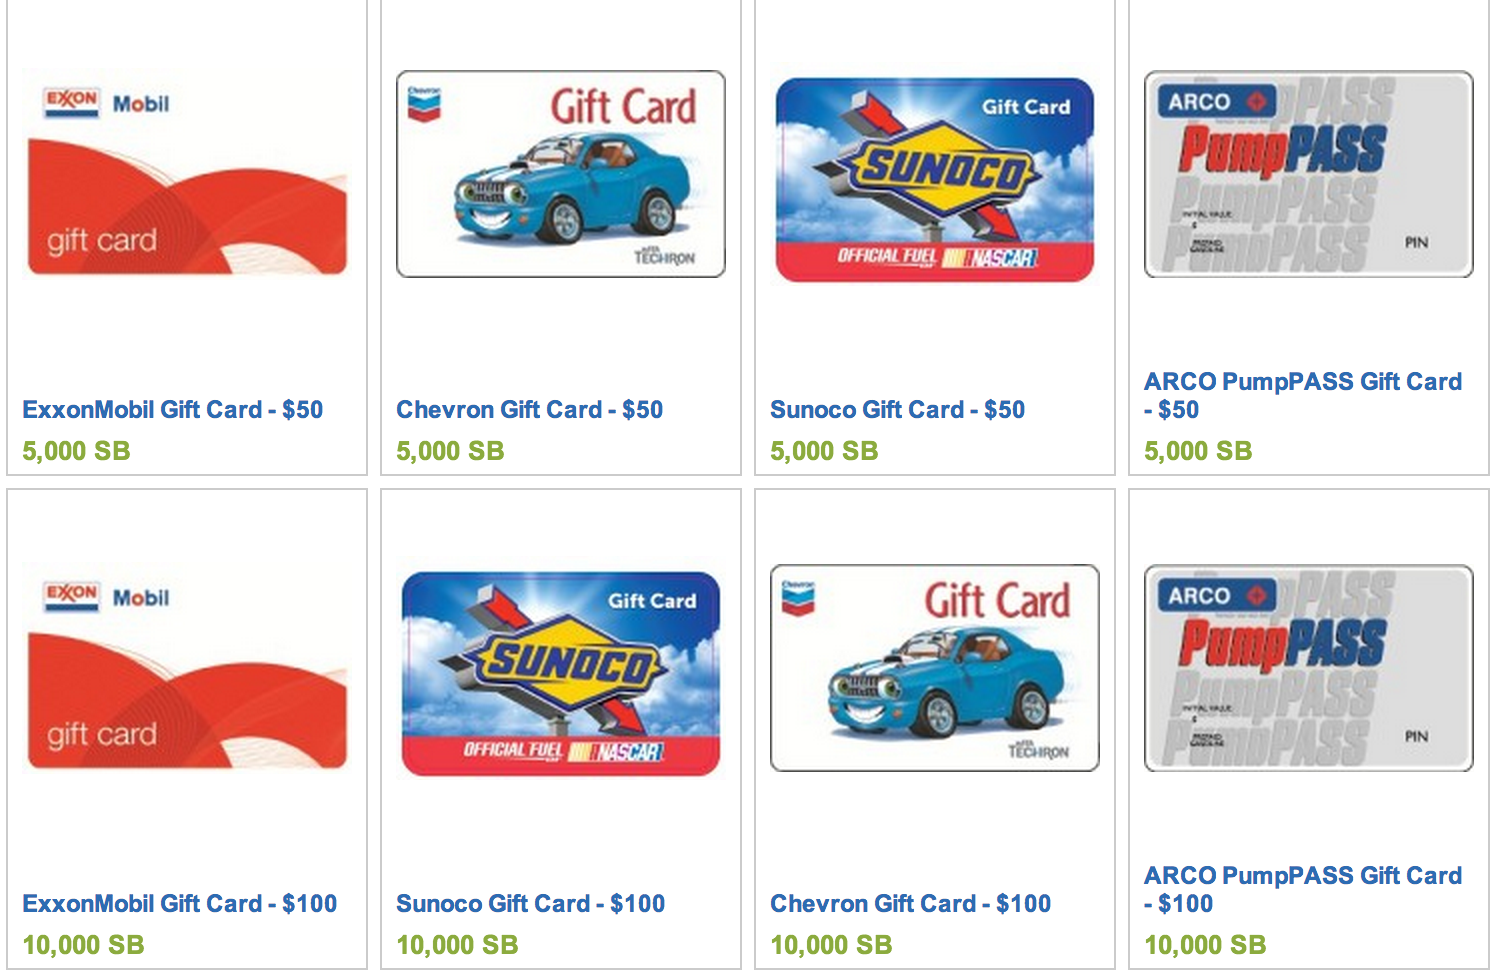 Arco Gas >> Free Gas from Chevron, Exxon, Mobile, Arco or Sunoco! - Freebies2Deals